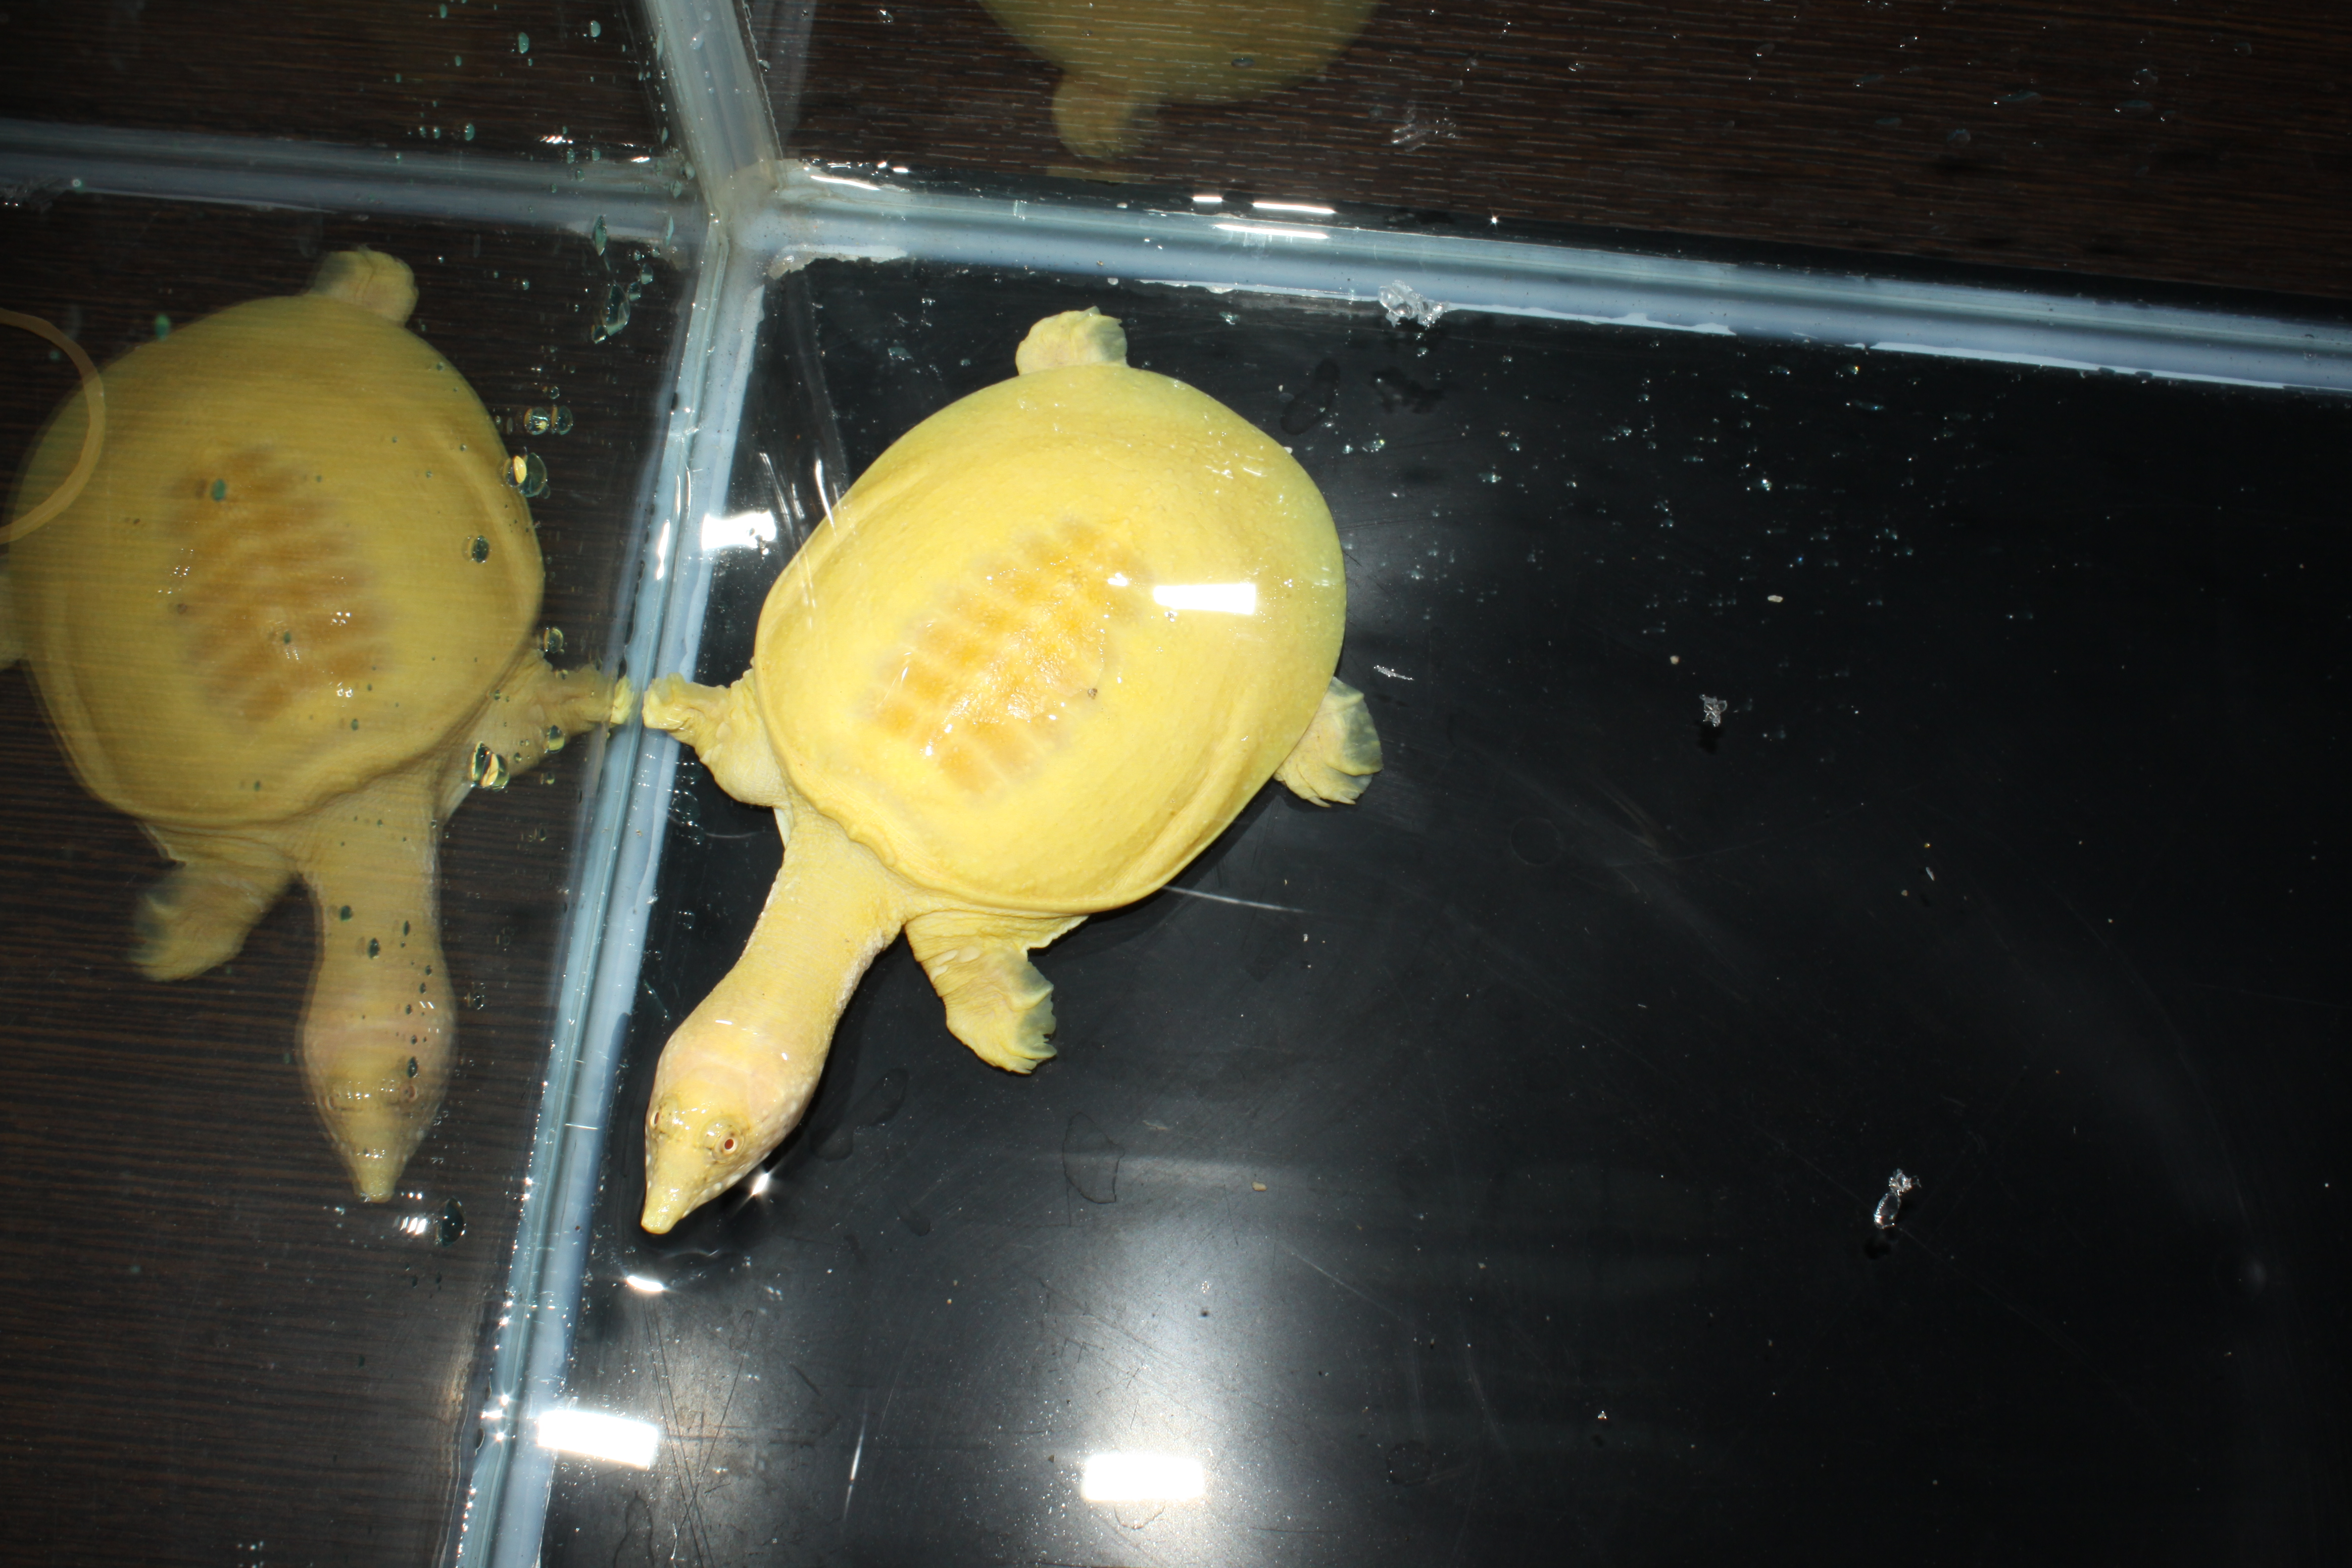 Albino Chinese Softshell